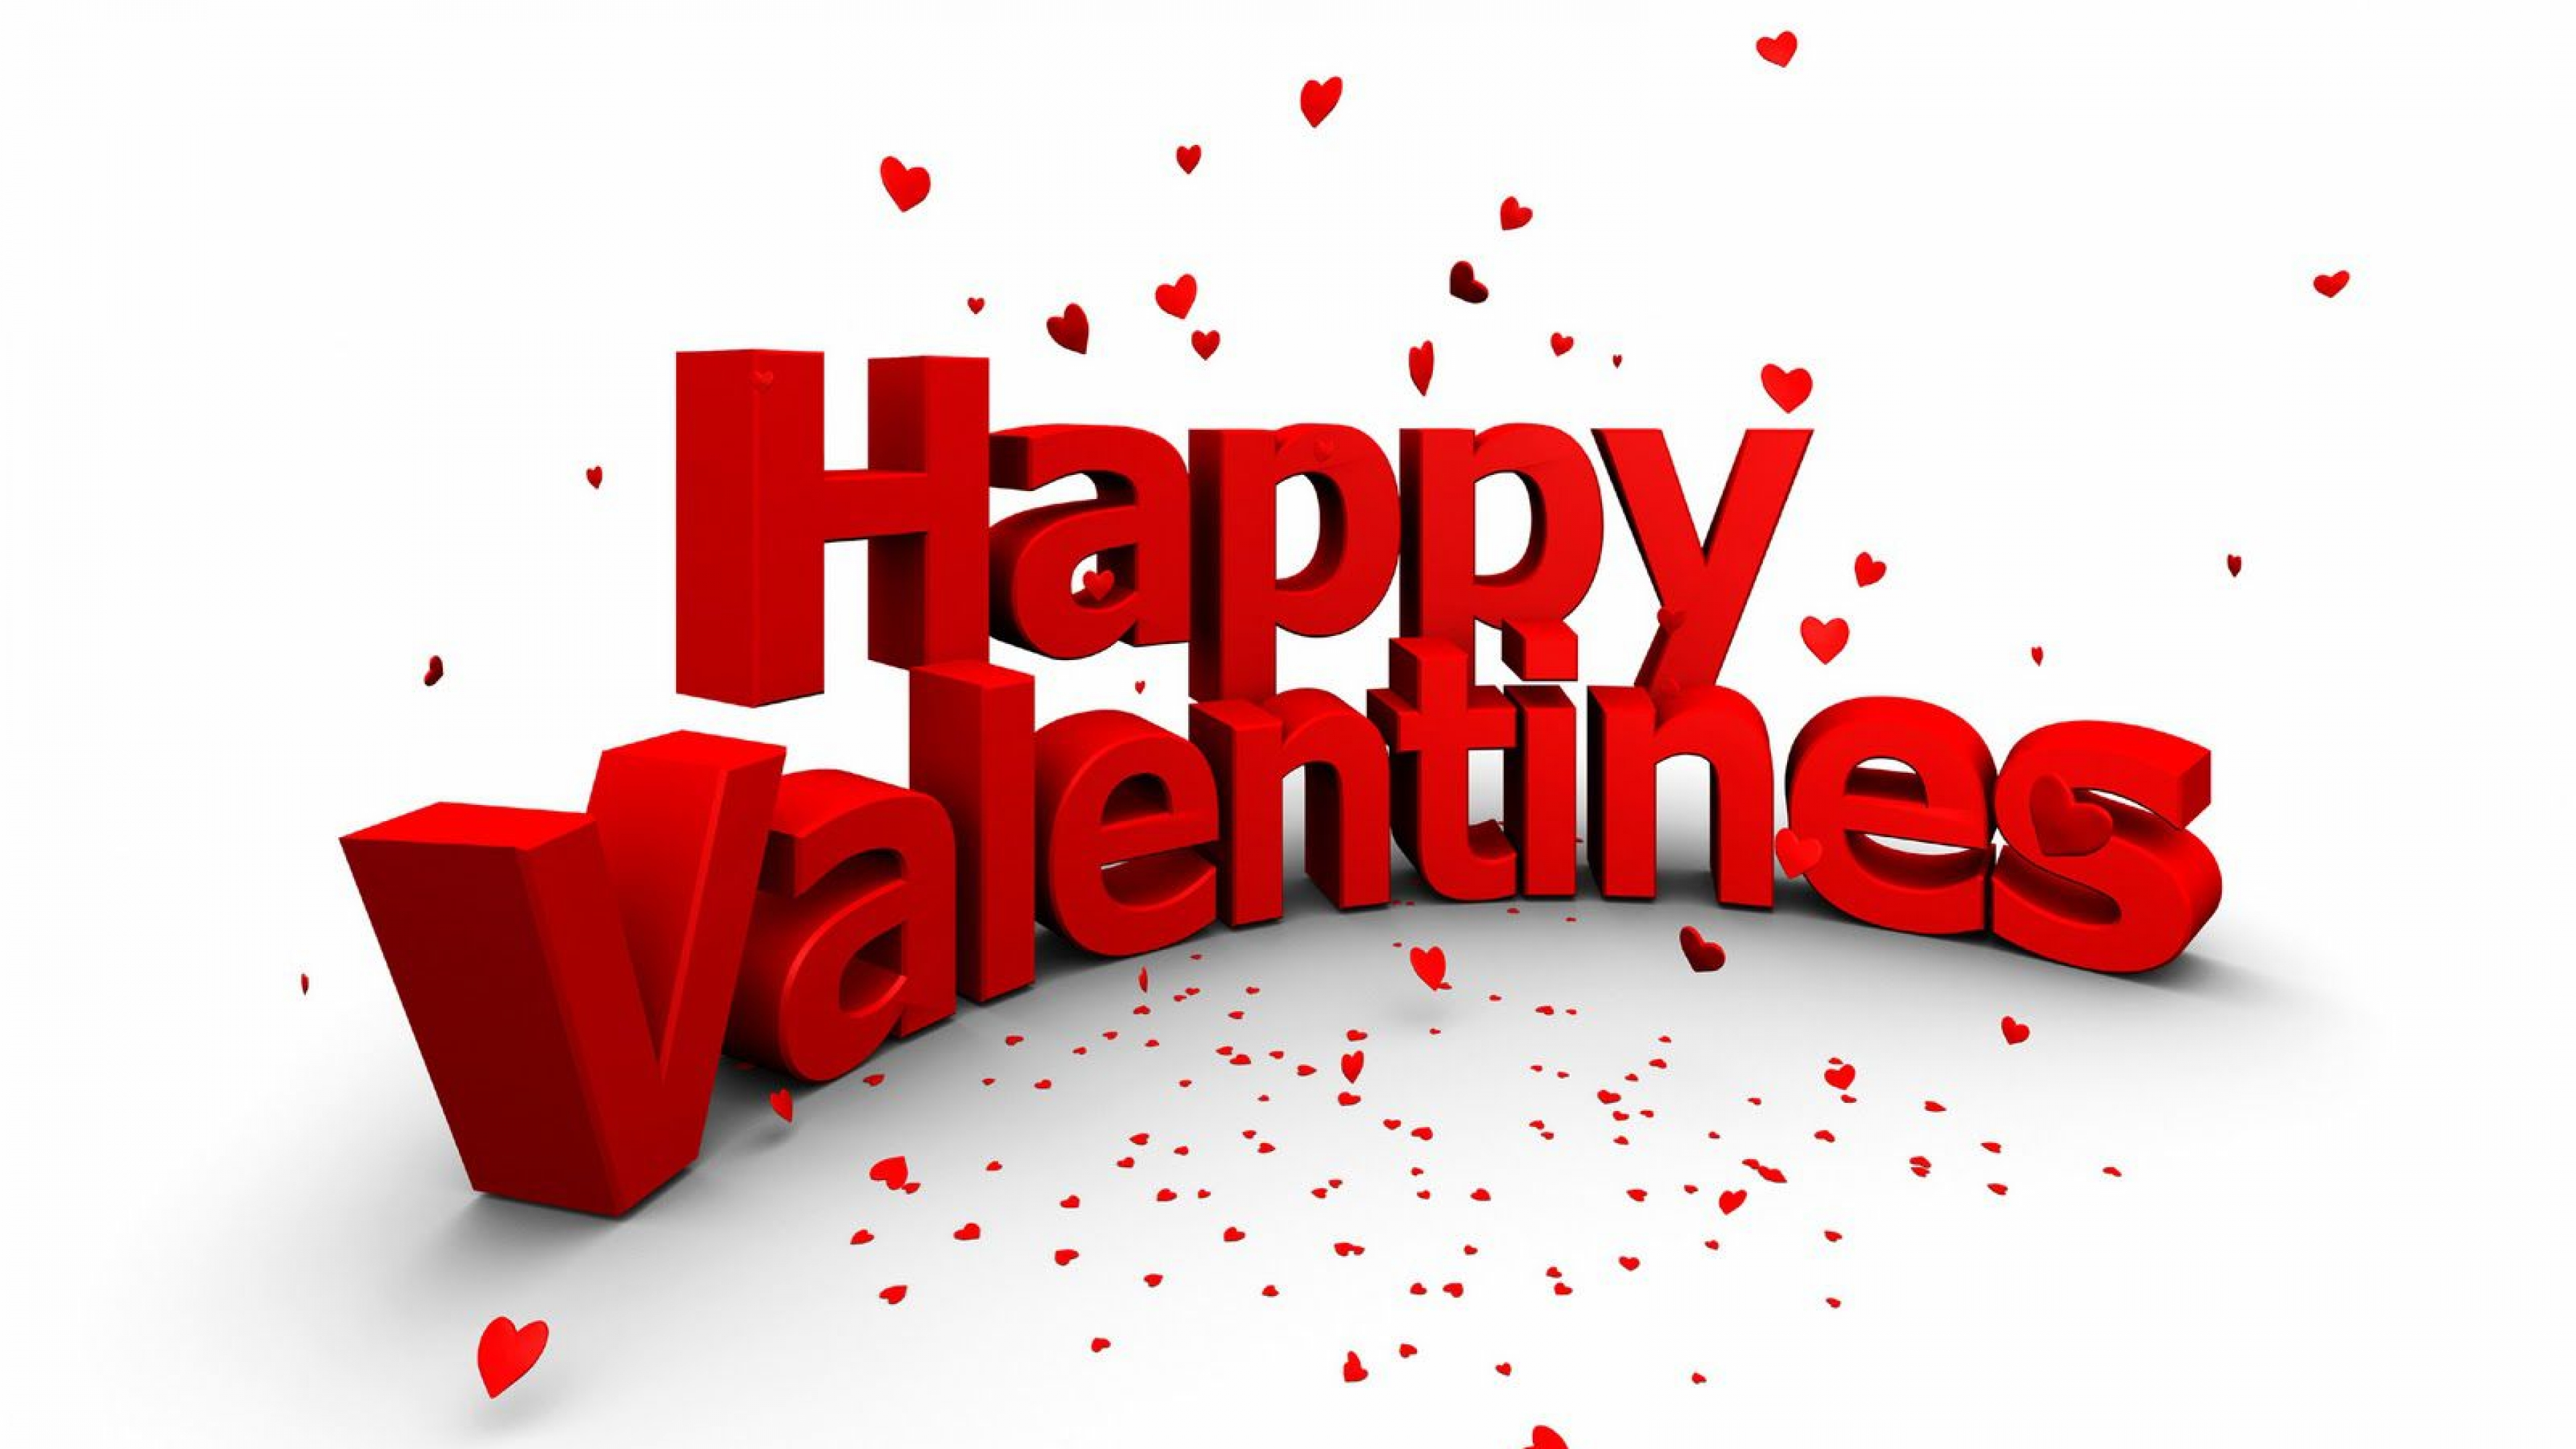 Happy Valentines Wishes HD Image Wallpaper 4k 3840x2160